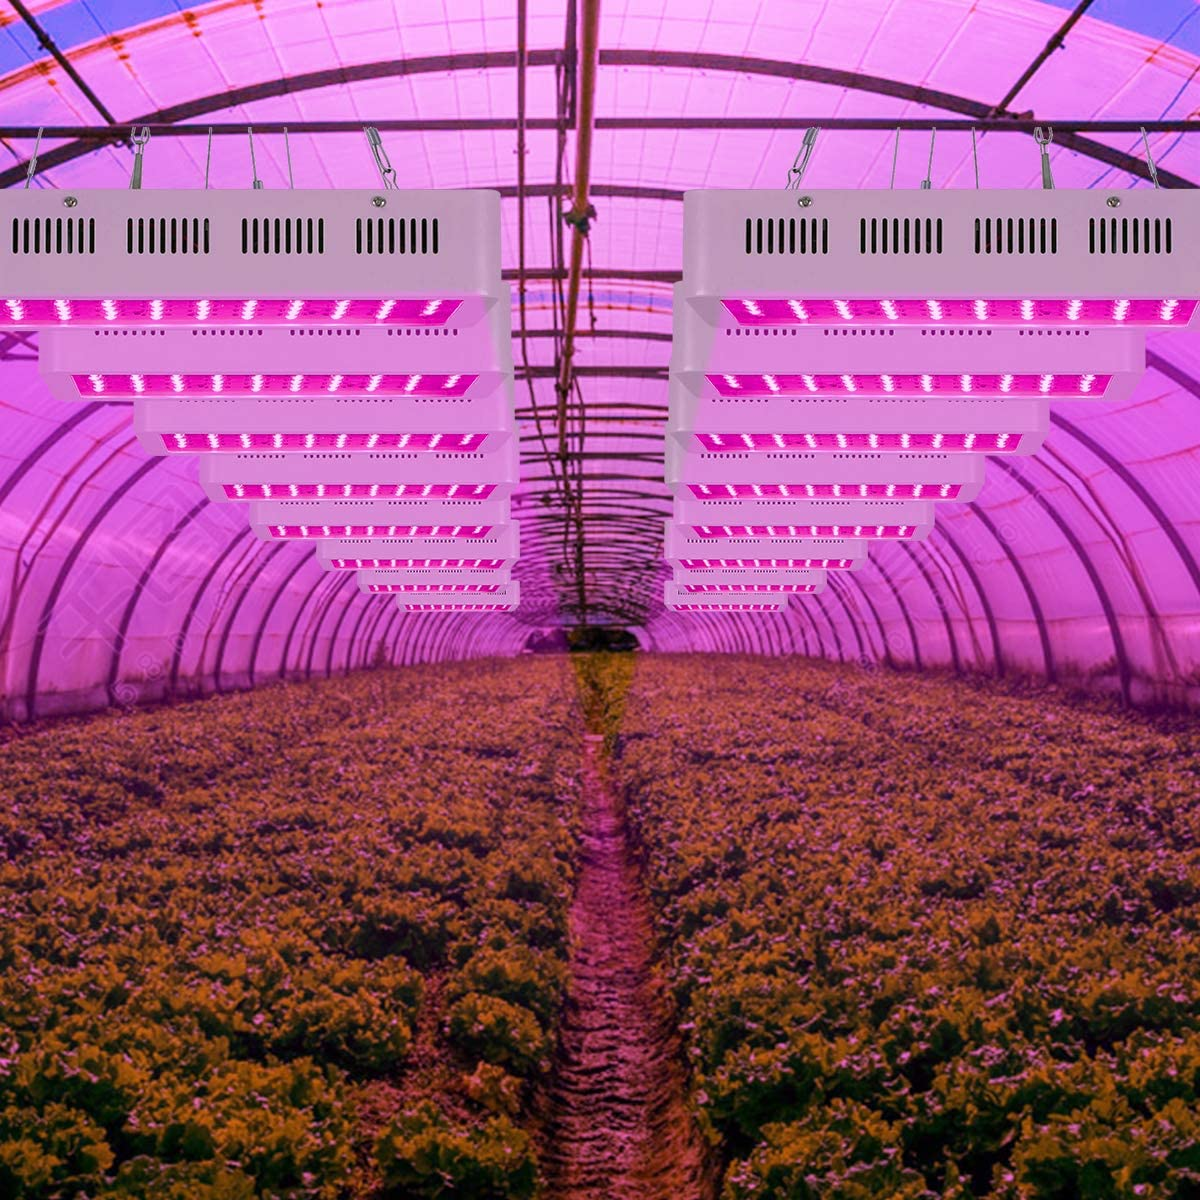 LED grow lights are a popular horticulture product